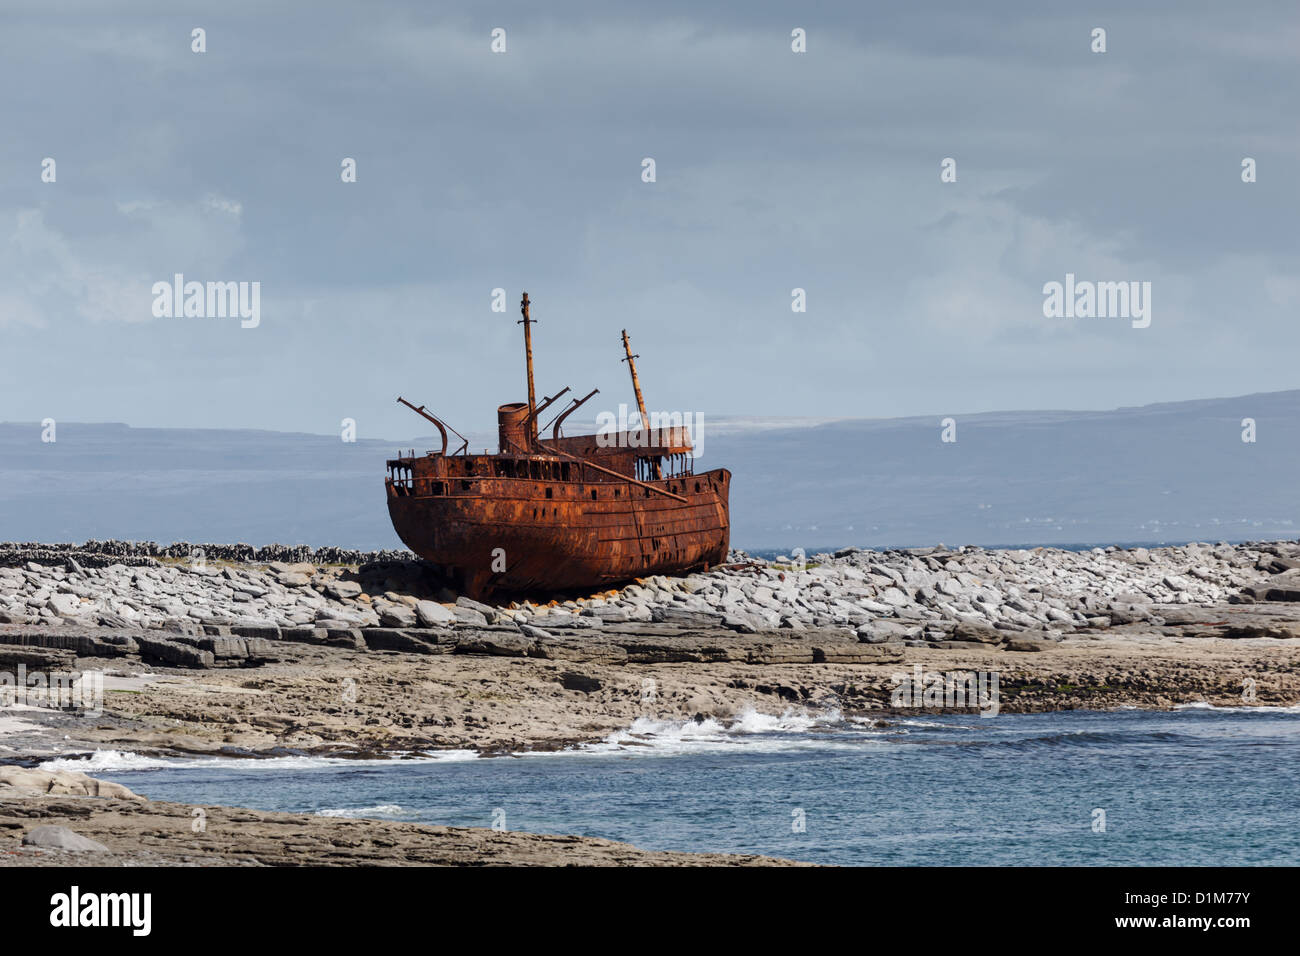 The cargo vessel Plassey shipwrecked off Inishee  Ireland in the 1960s. Only its rusted hulk remains on the rocks - Stock Image